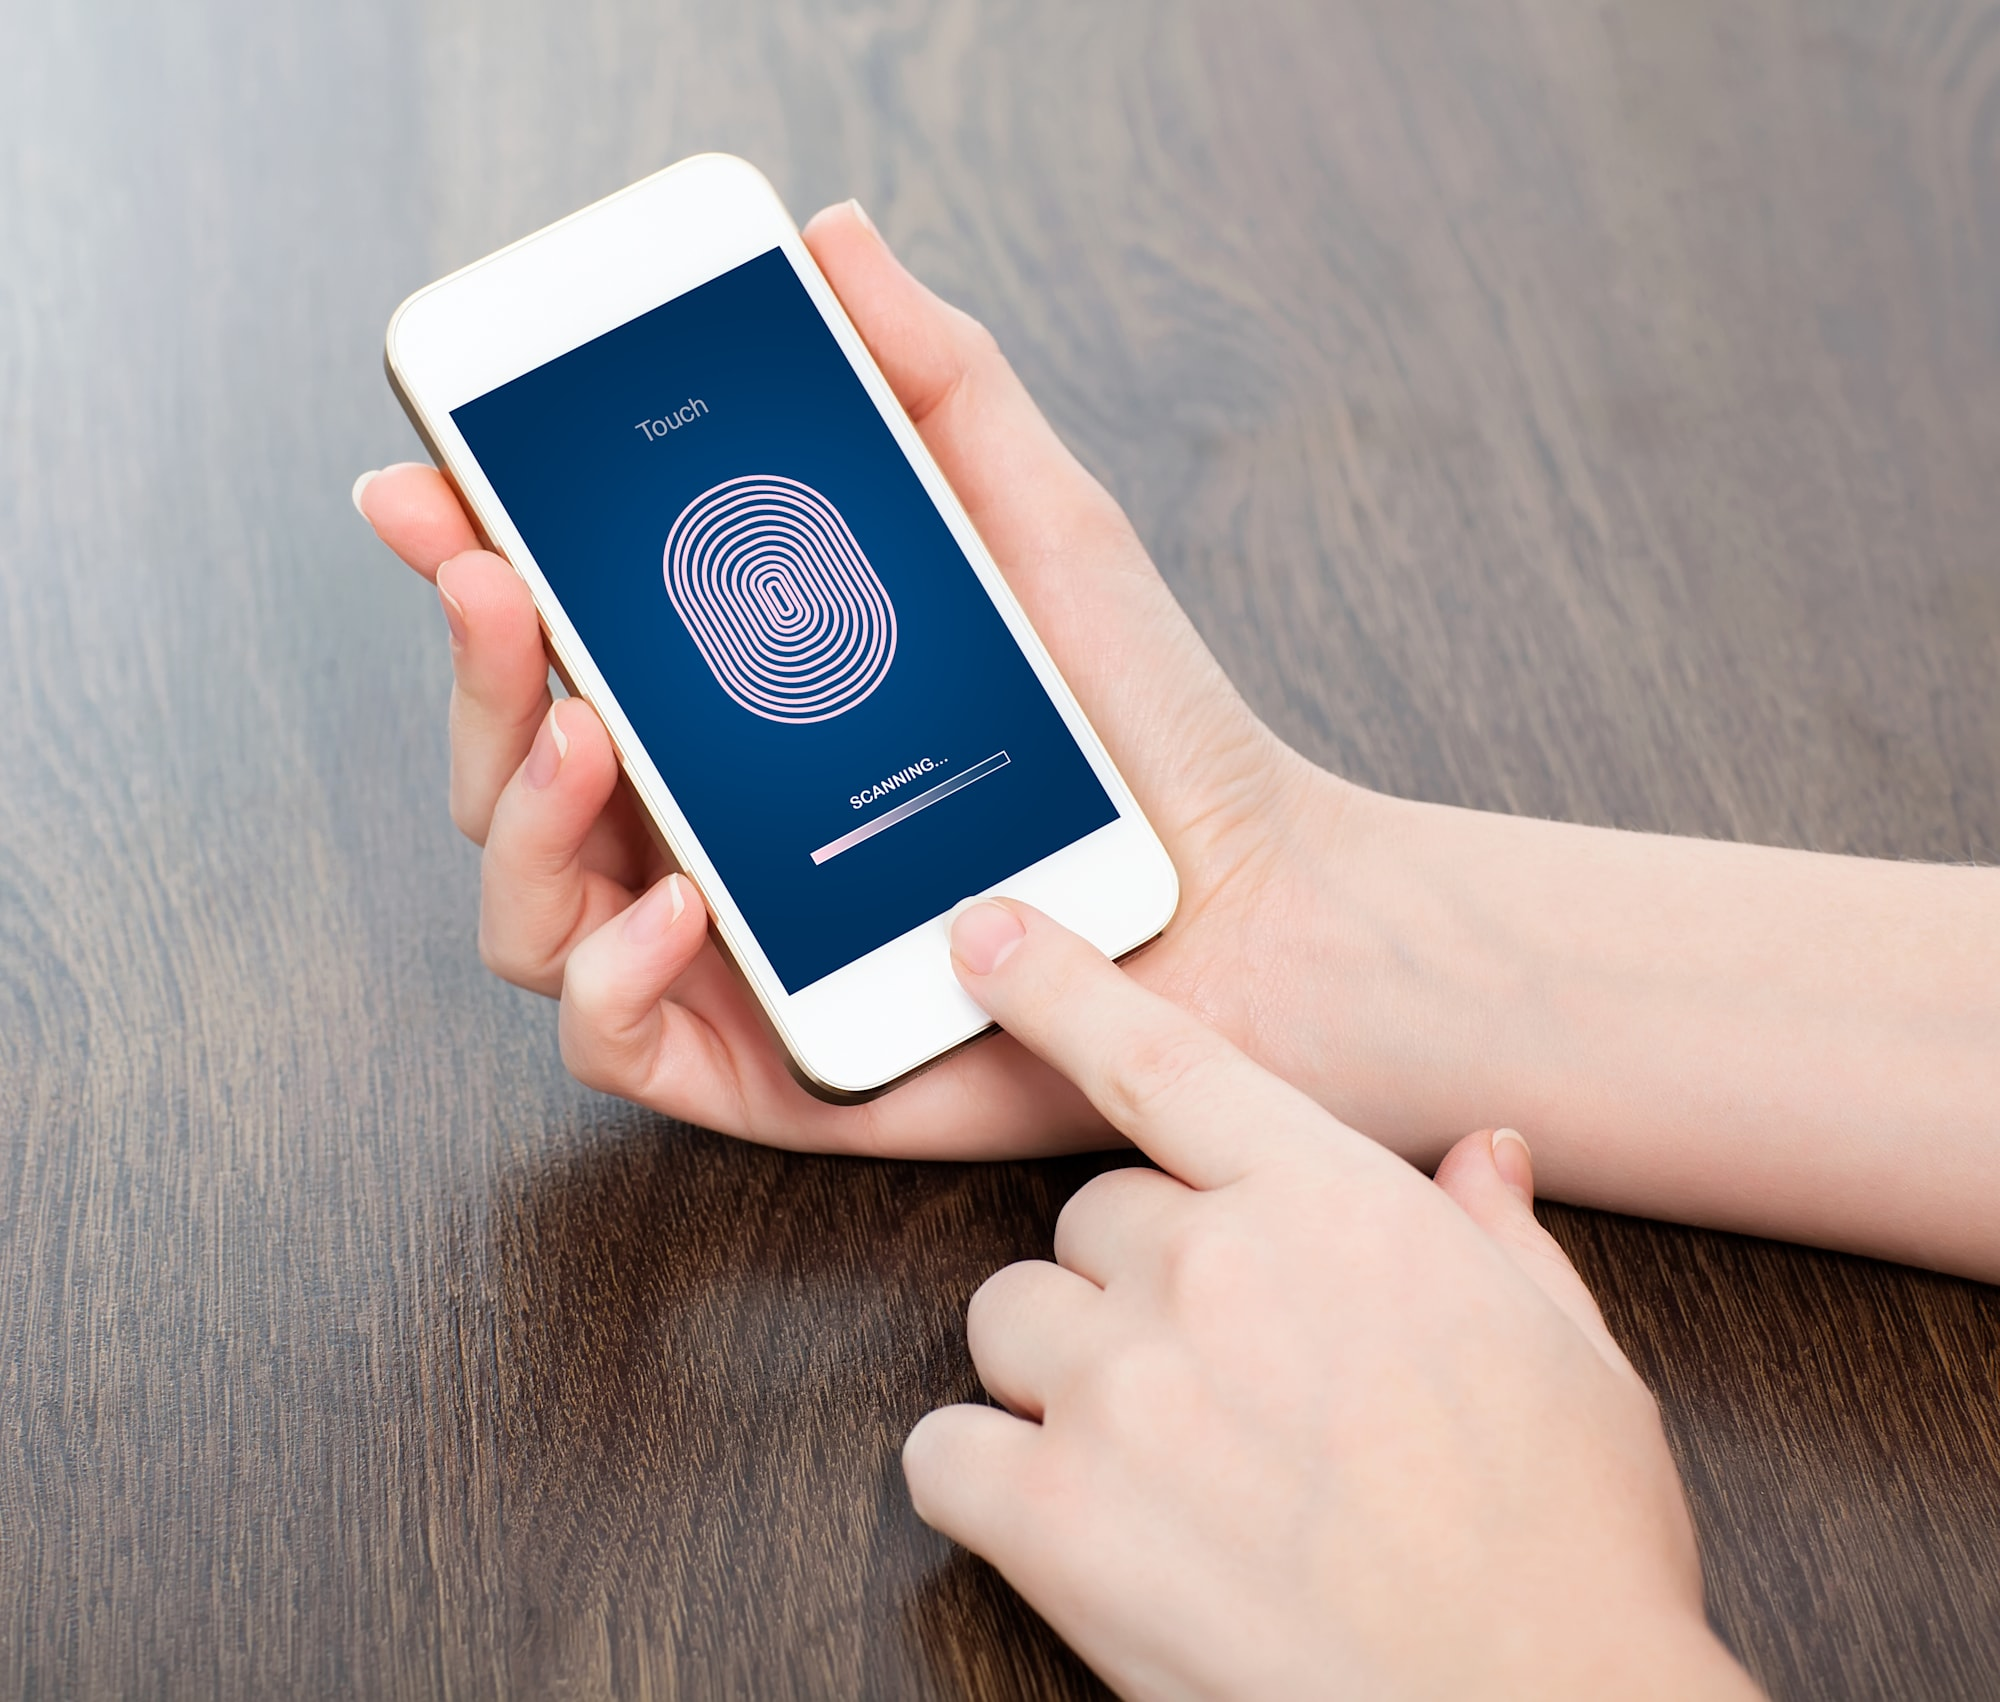 female hands holding phone and entering PIN code of finger